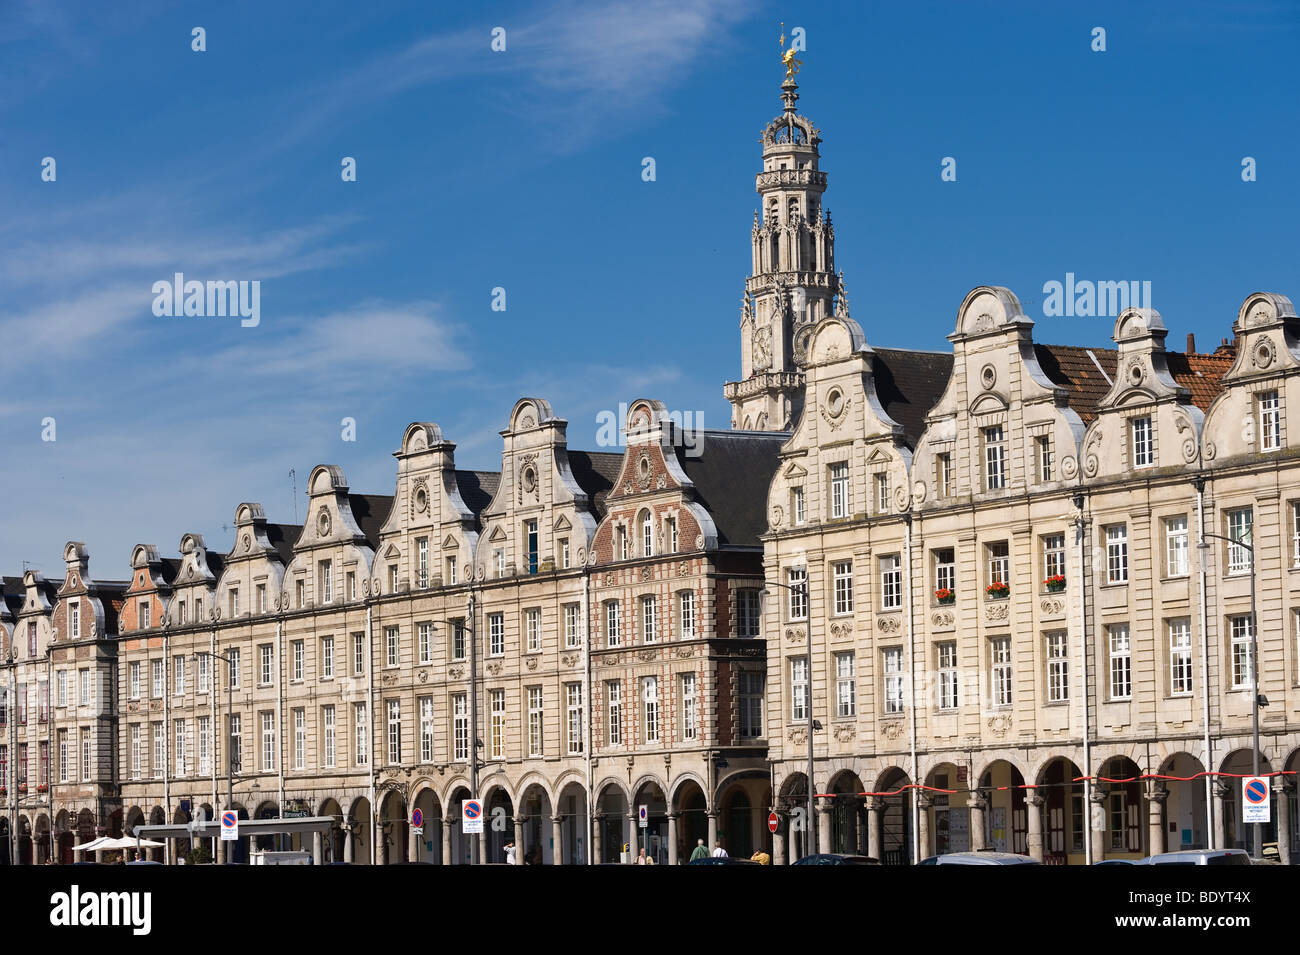 Public houses and Town Hall Tower, Grand Place, Arras, Nord Pas-de-Calais, Normandy, France, Europe - Stock Image